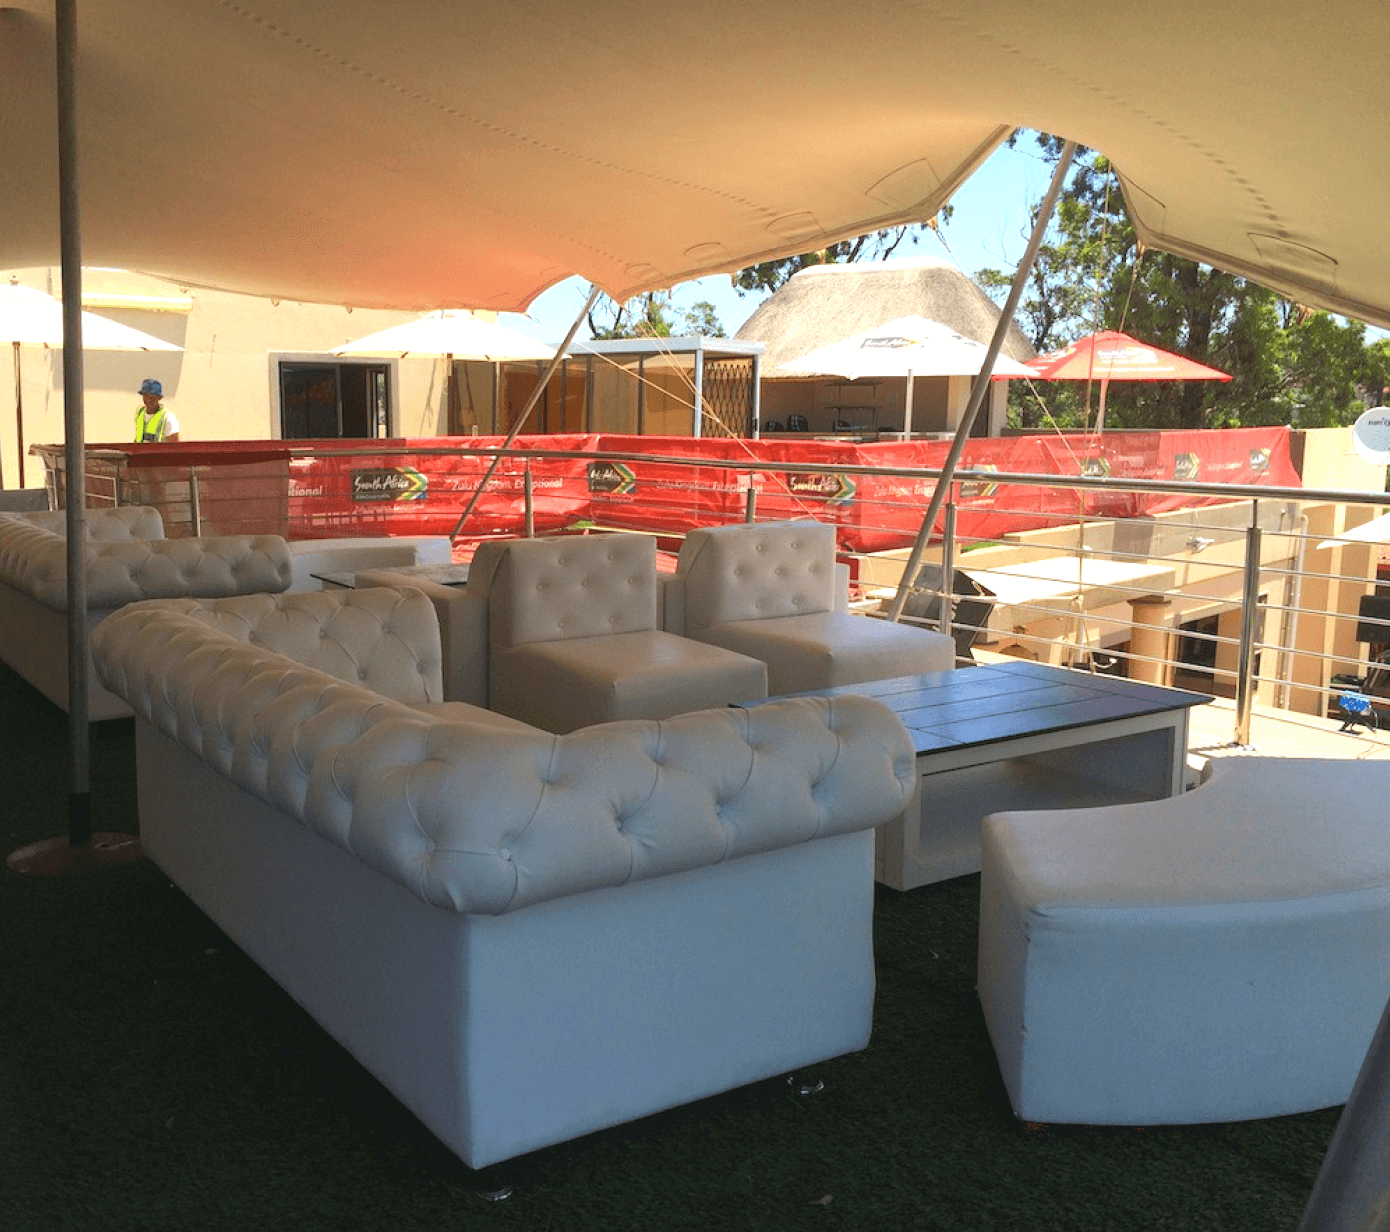 beige stretch tents with couches